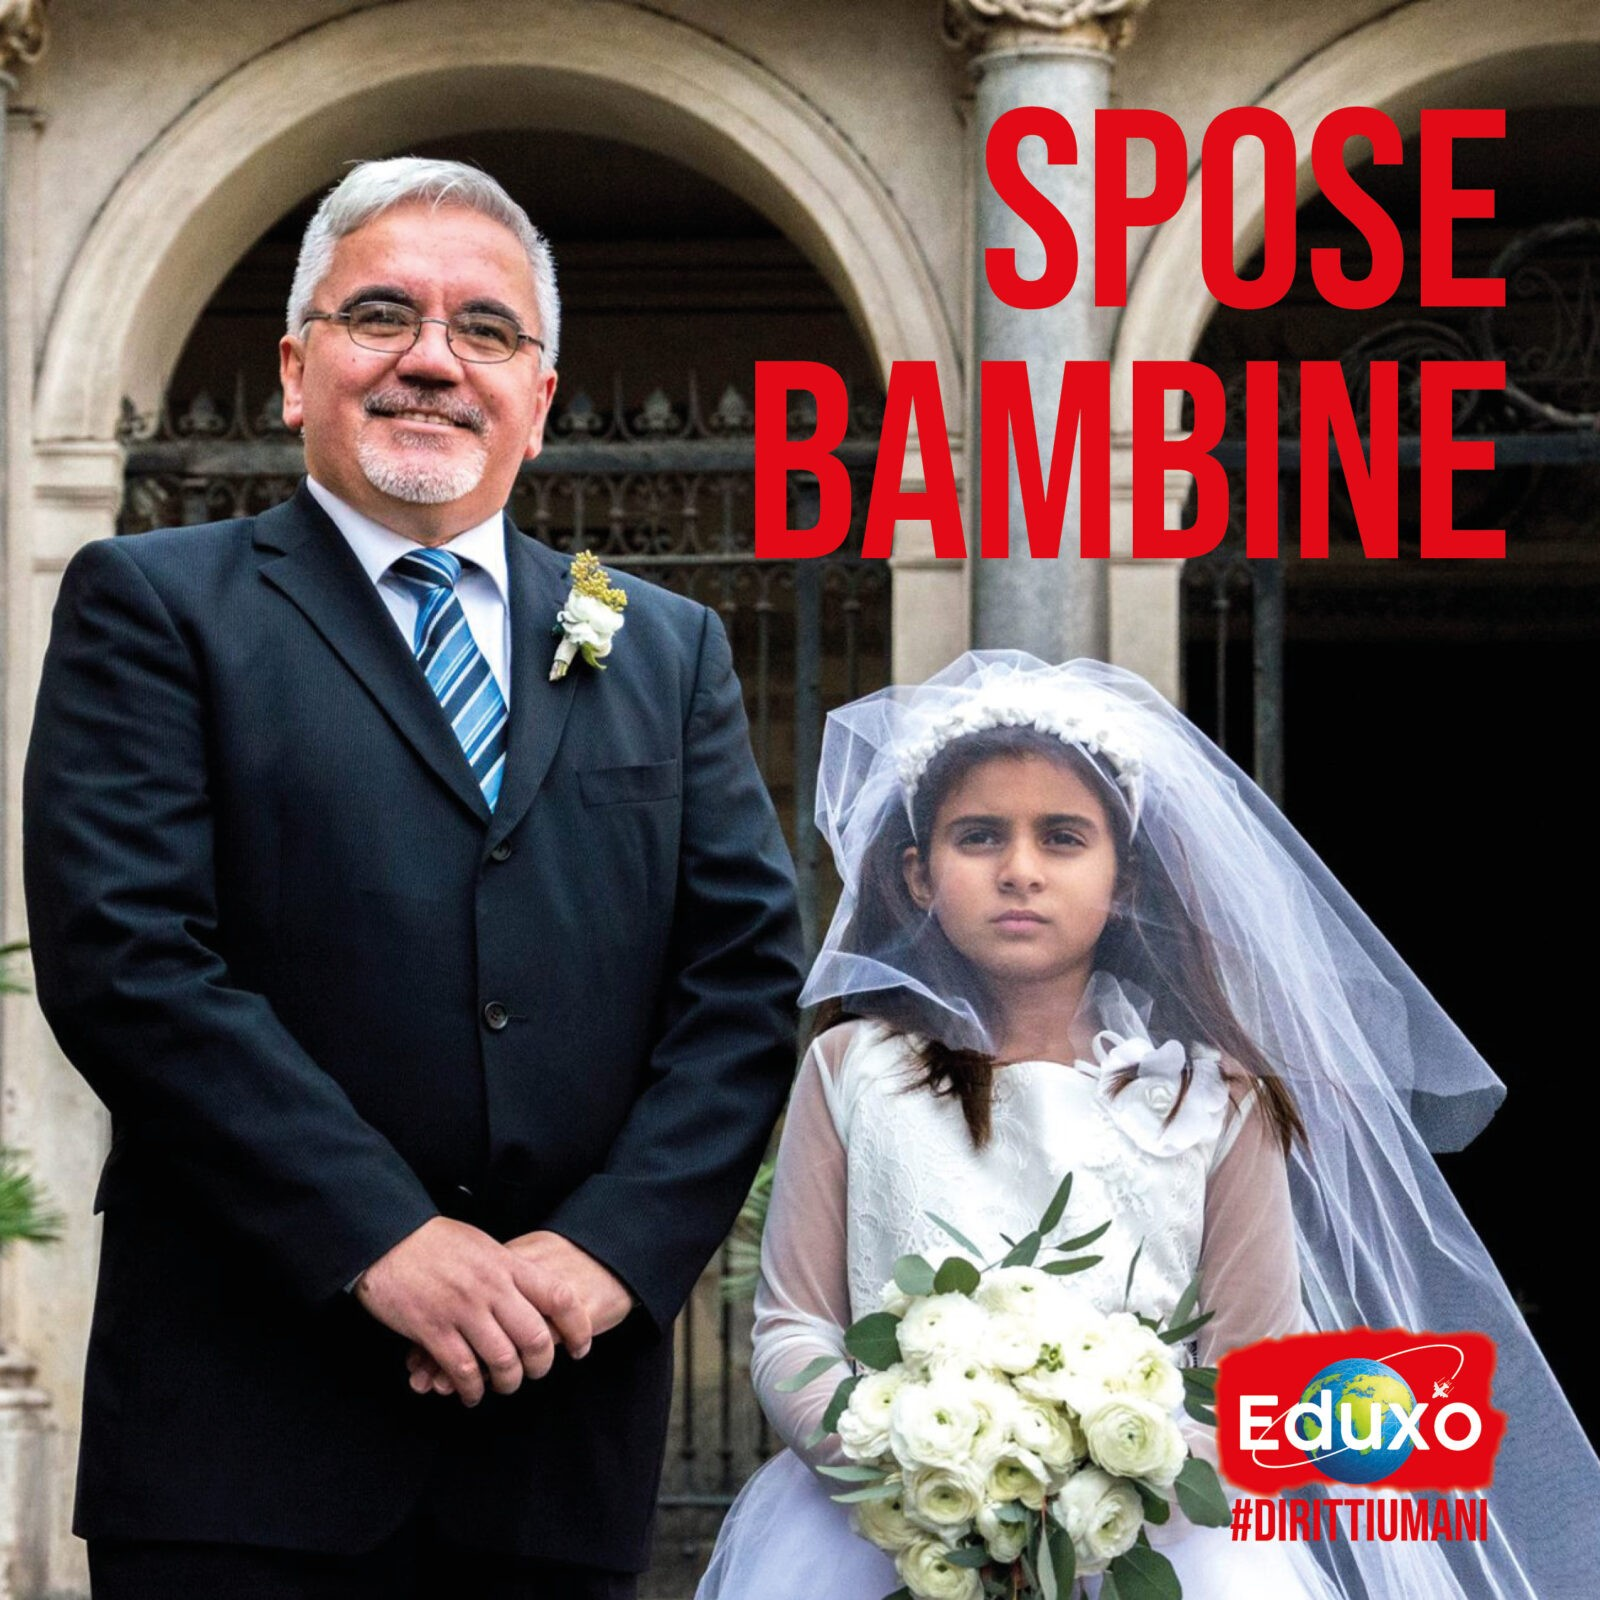 You are currently viewing Spose bambine, i matrimoni precoci